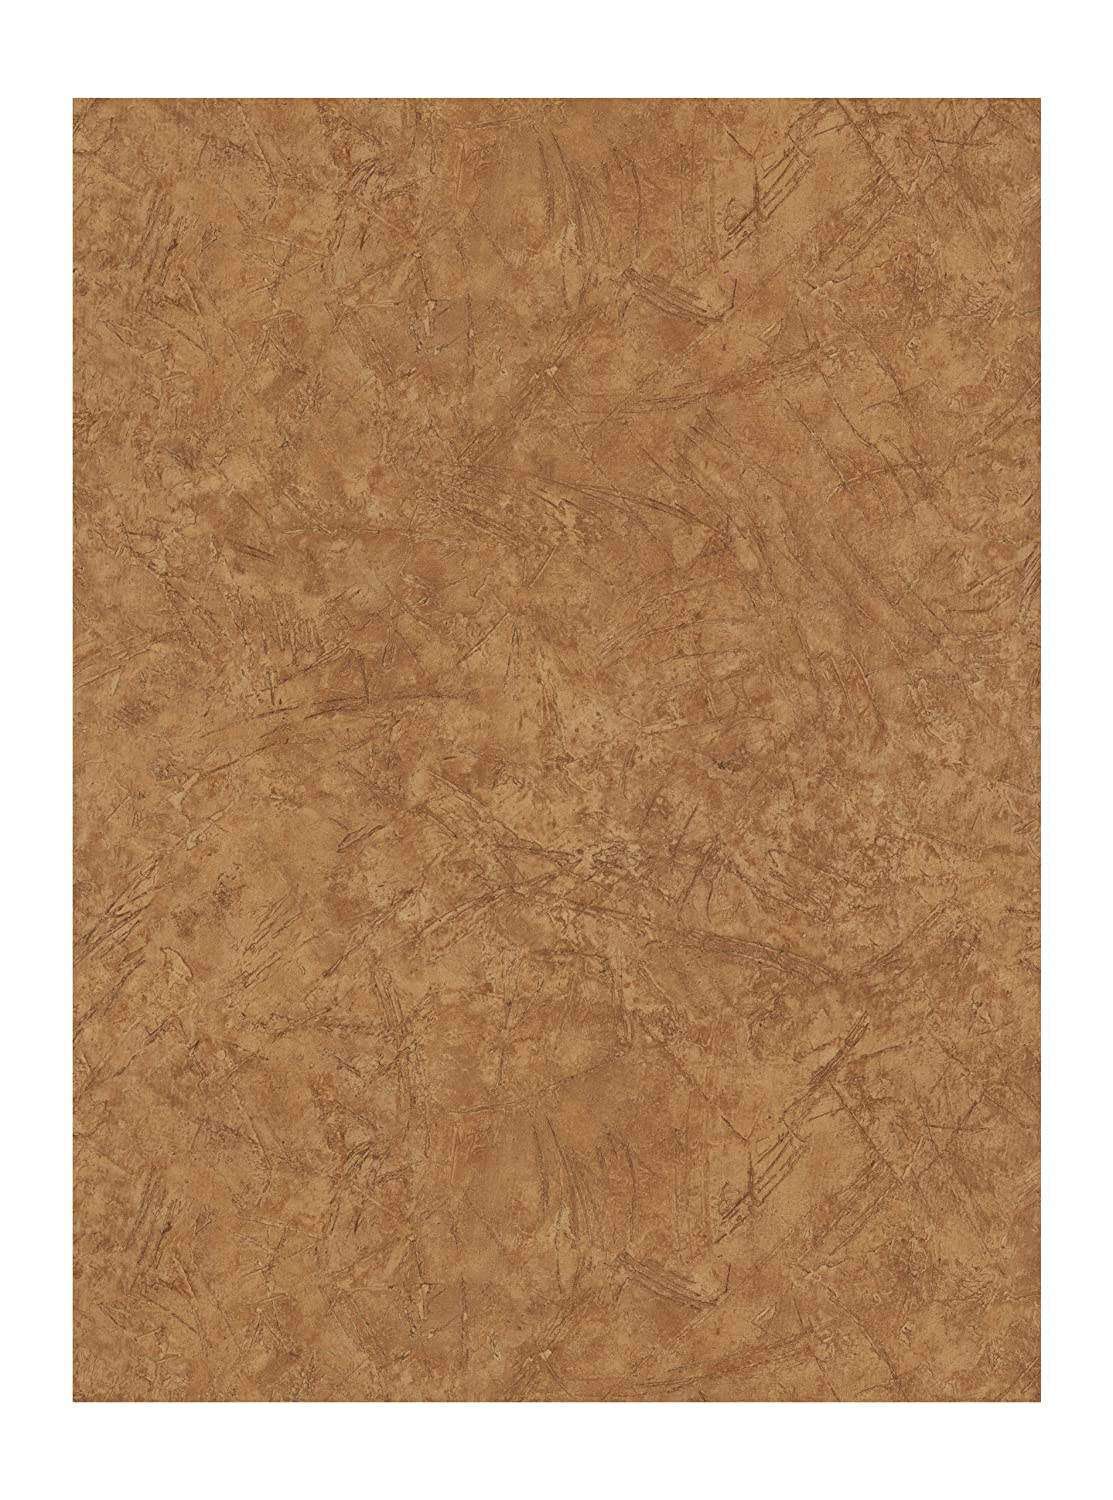 York Wallcoverings NV9442 Lake Forest Lodge Old Leather Wallpaper, Rust